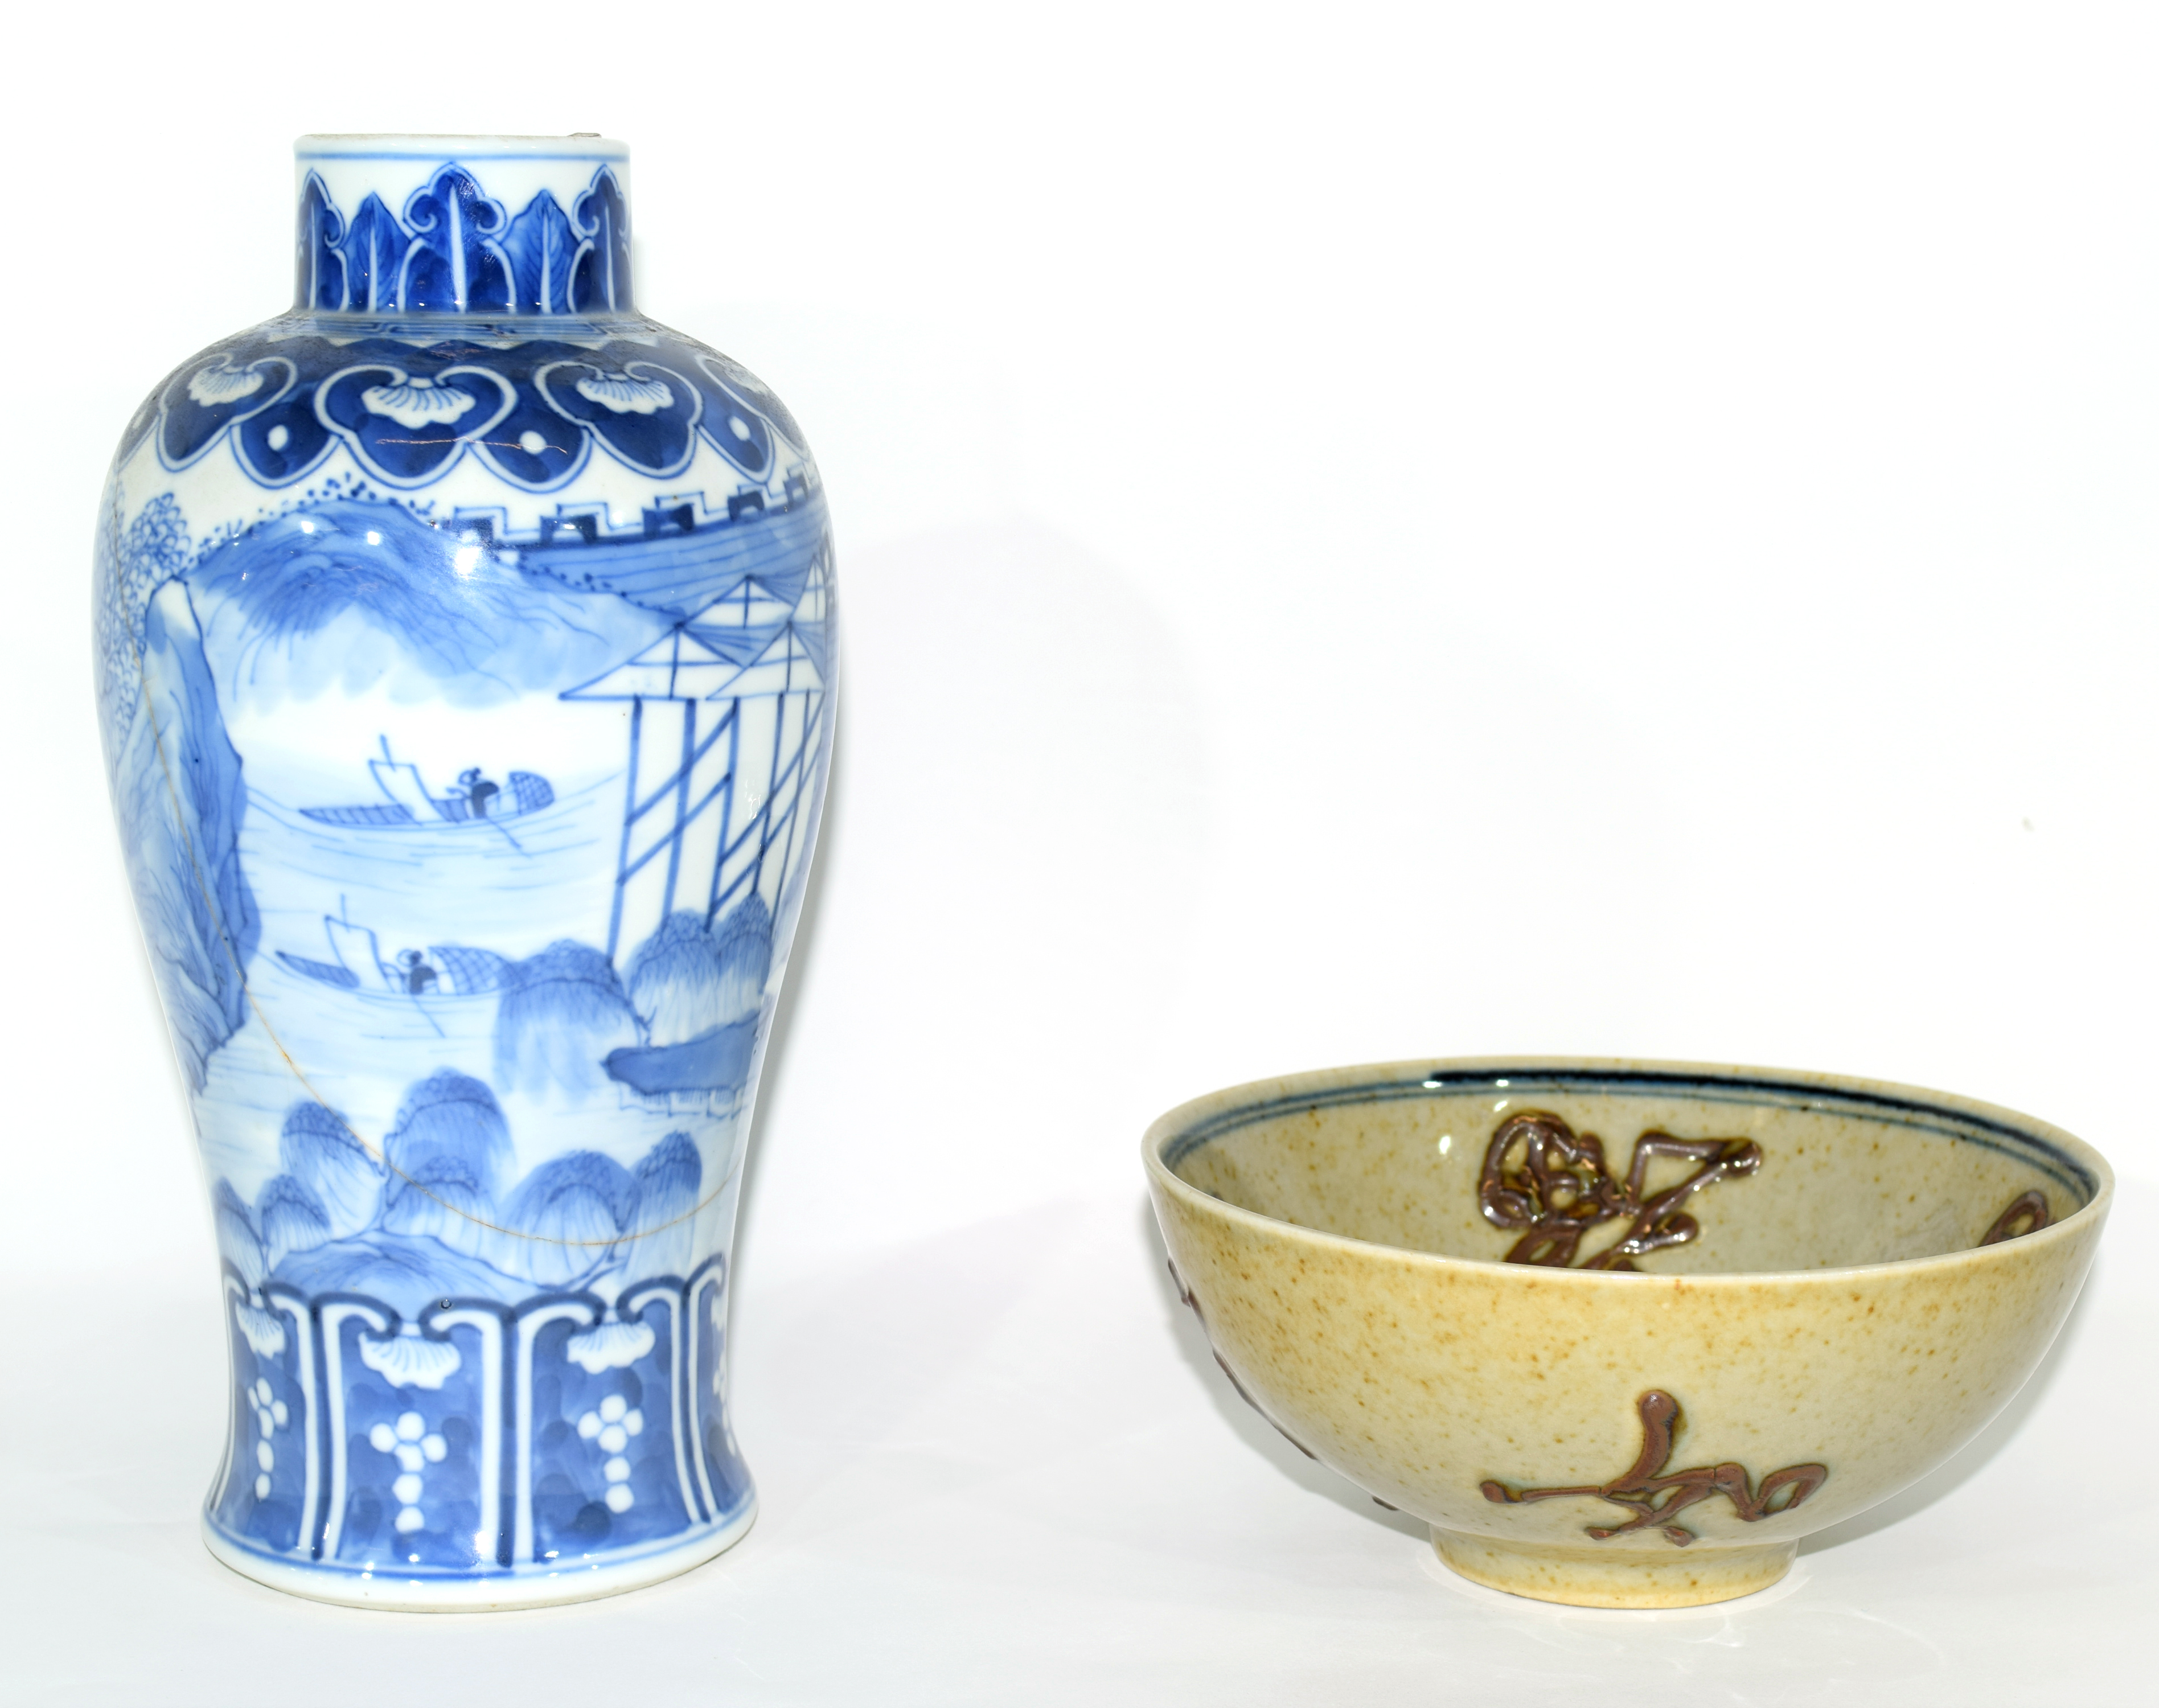 19th century Chinese porcelain bowl - Image 2 of 17